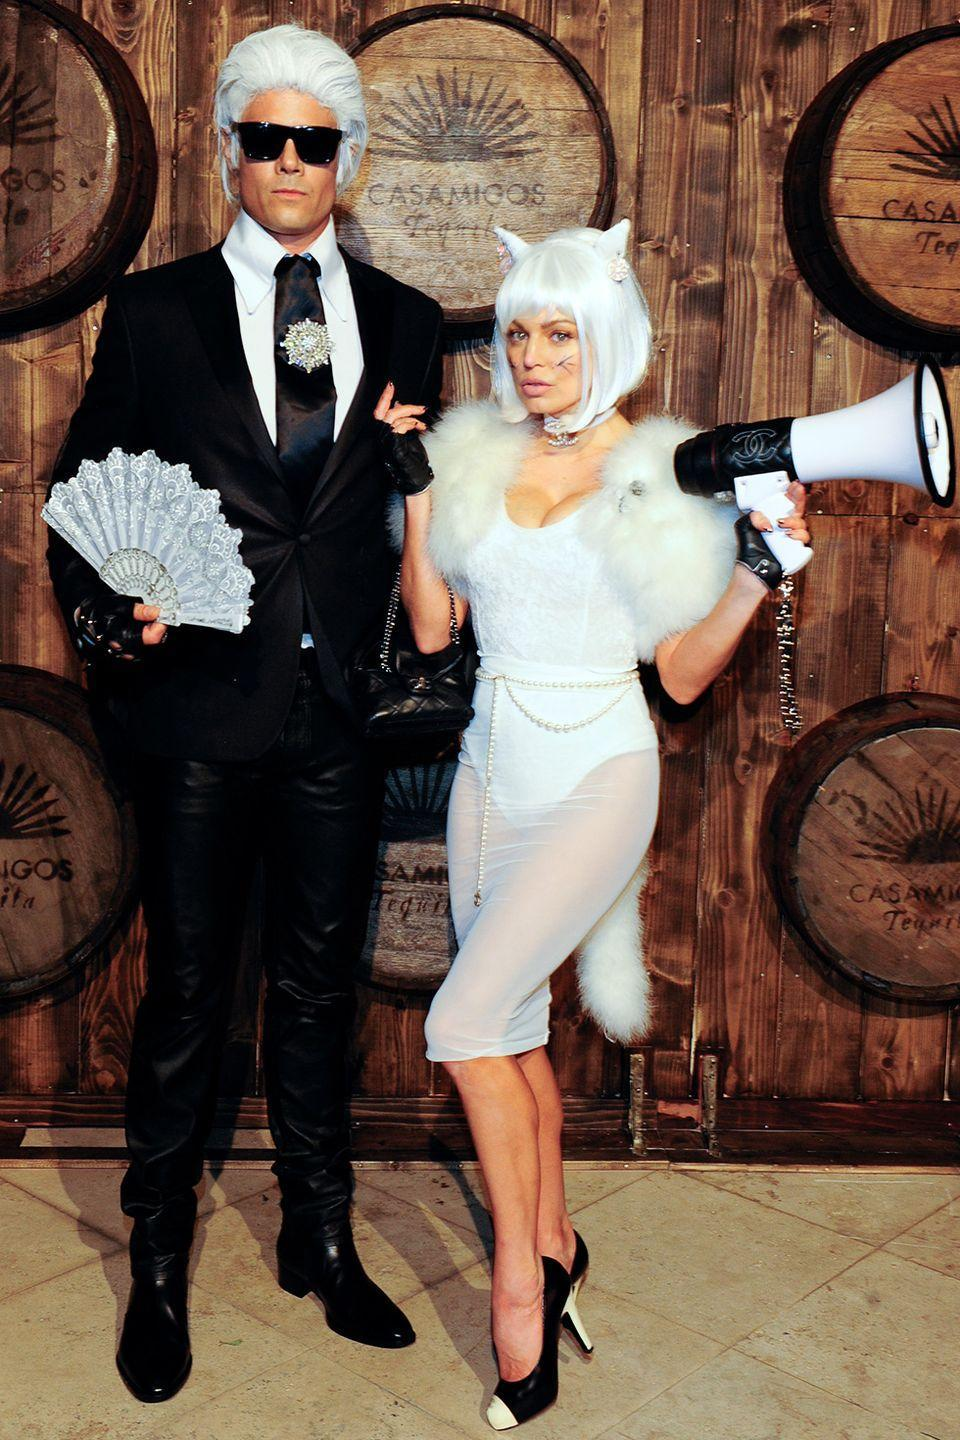 <p>Josh Duhamel and Fergie dressed up as Karl Lagerfeld and his cat, Choupette, to attend the 2015 Casamigos Tequila Halloween party in Los Angeles, California. </p>